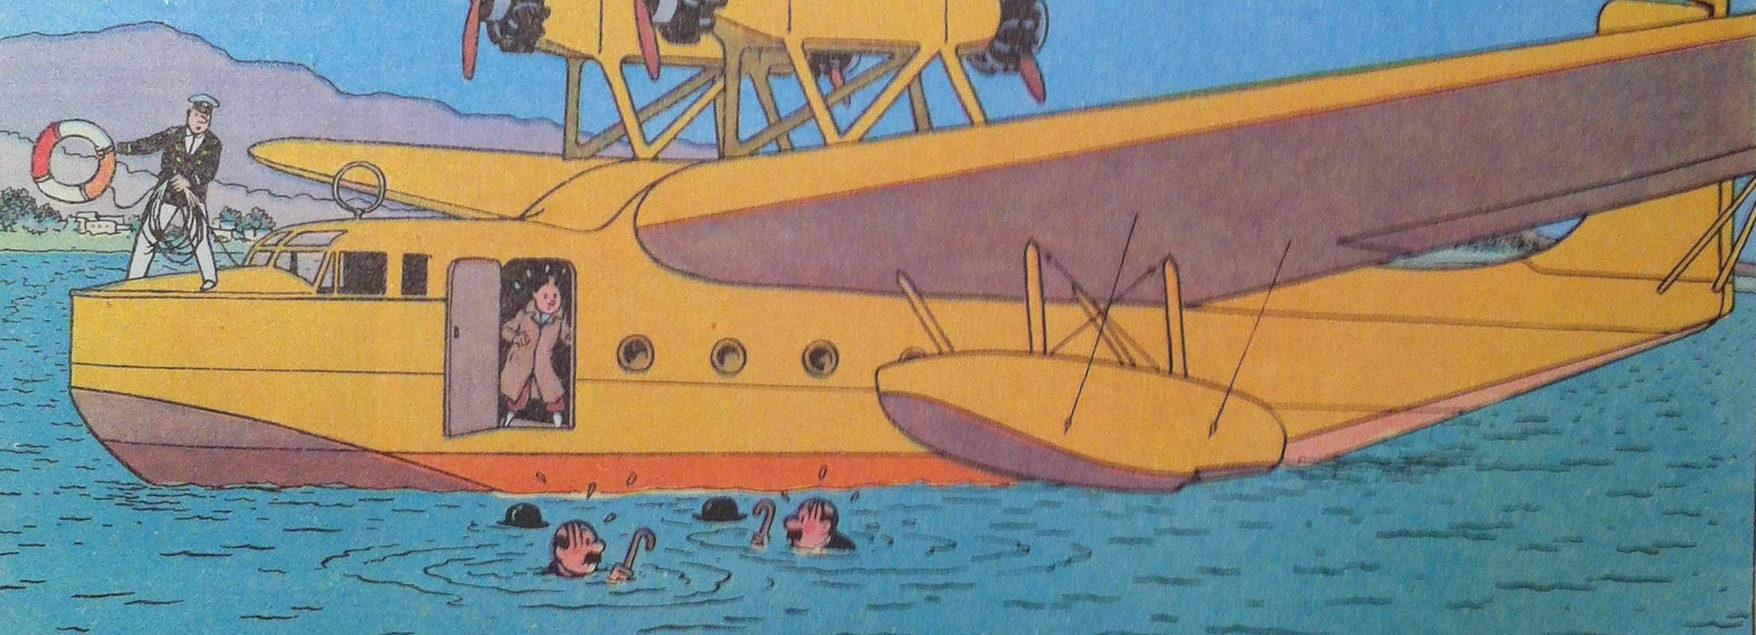 Tintin flying boat